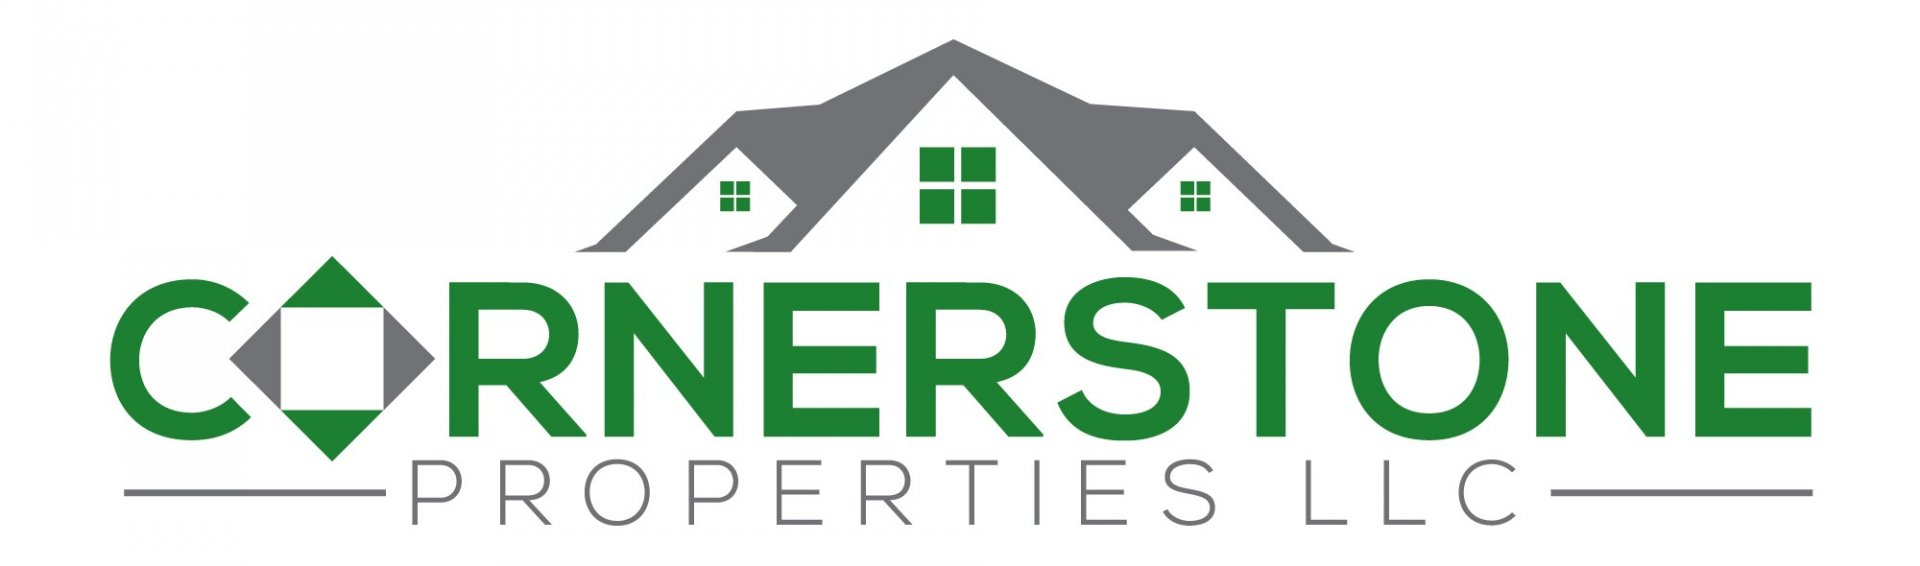 Cornerstone Properties LLC logo